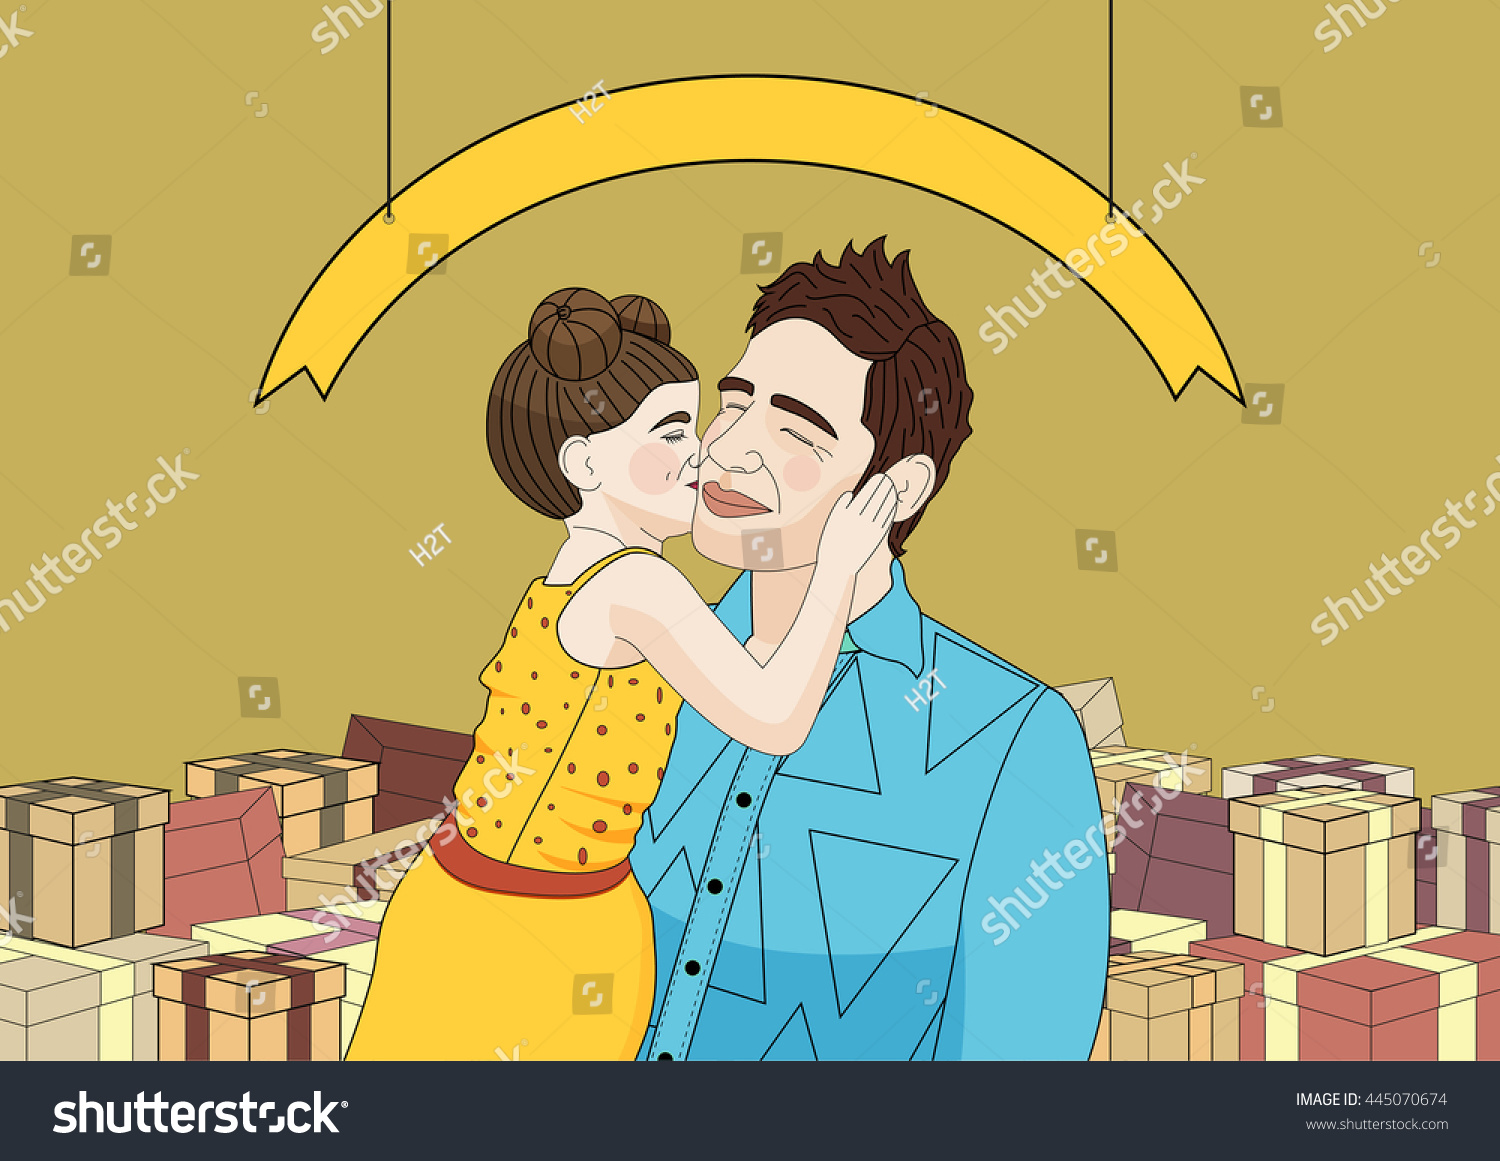 Girl Kissing Her Dad Fathers Day Daughter Stock Vector 445070674 - Shutterstock-7688